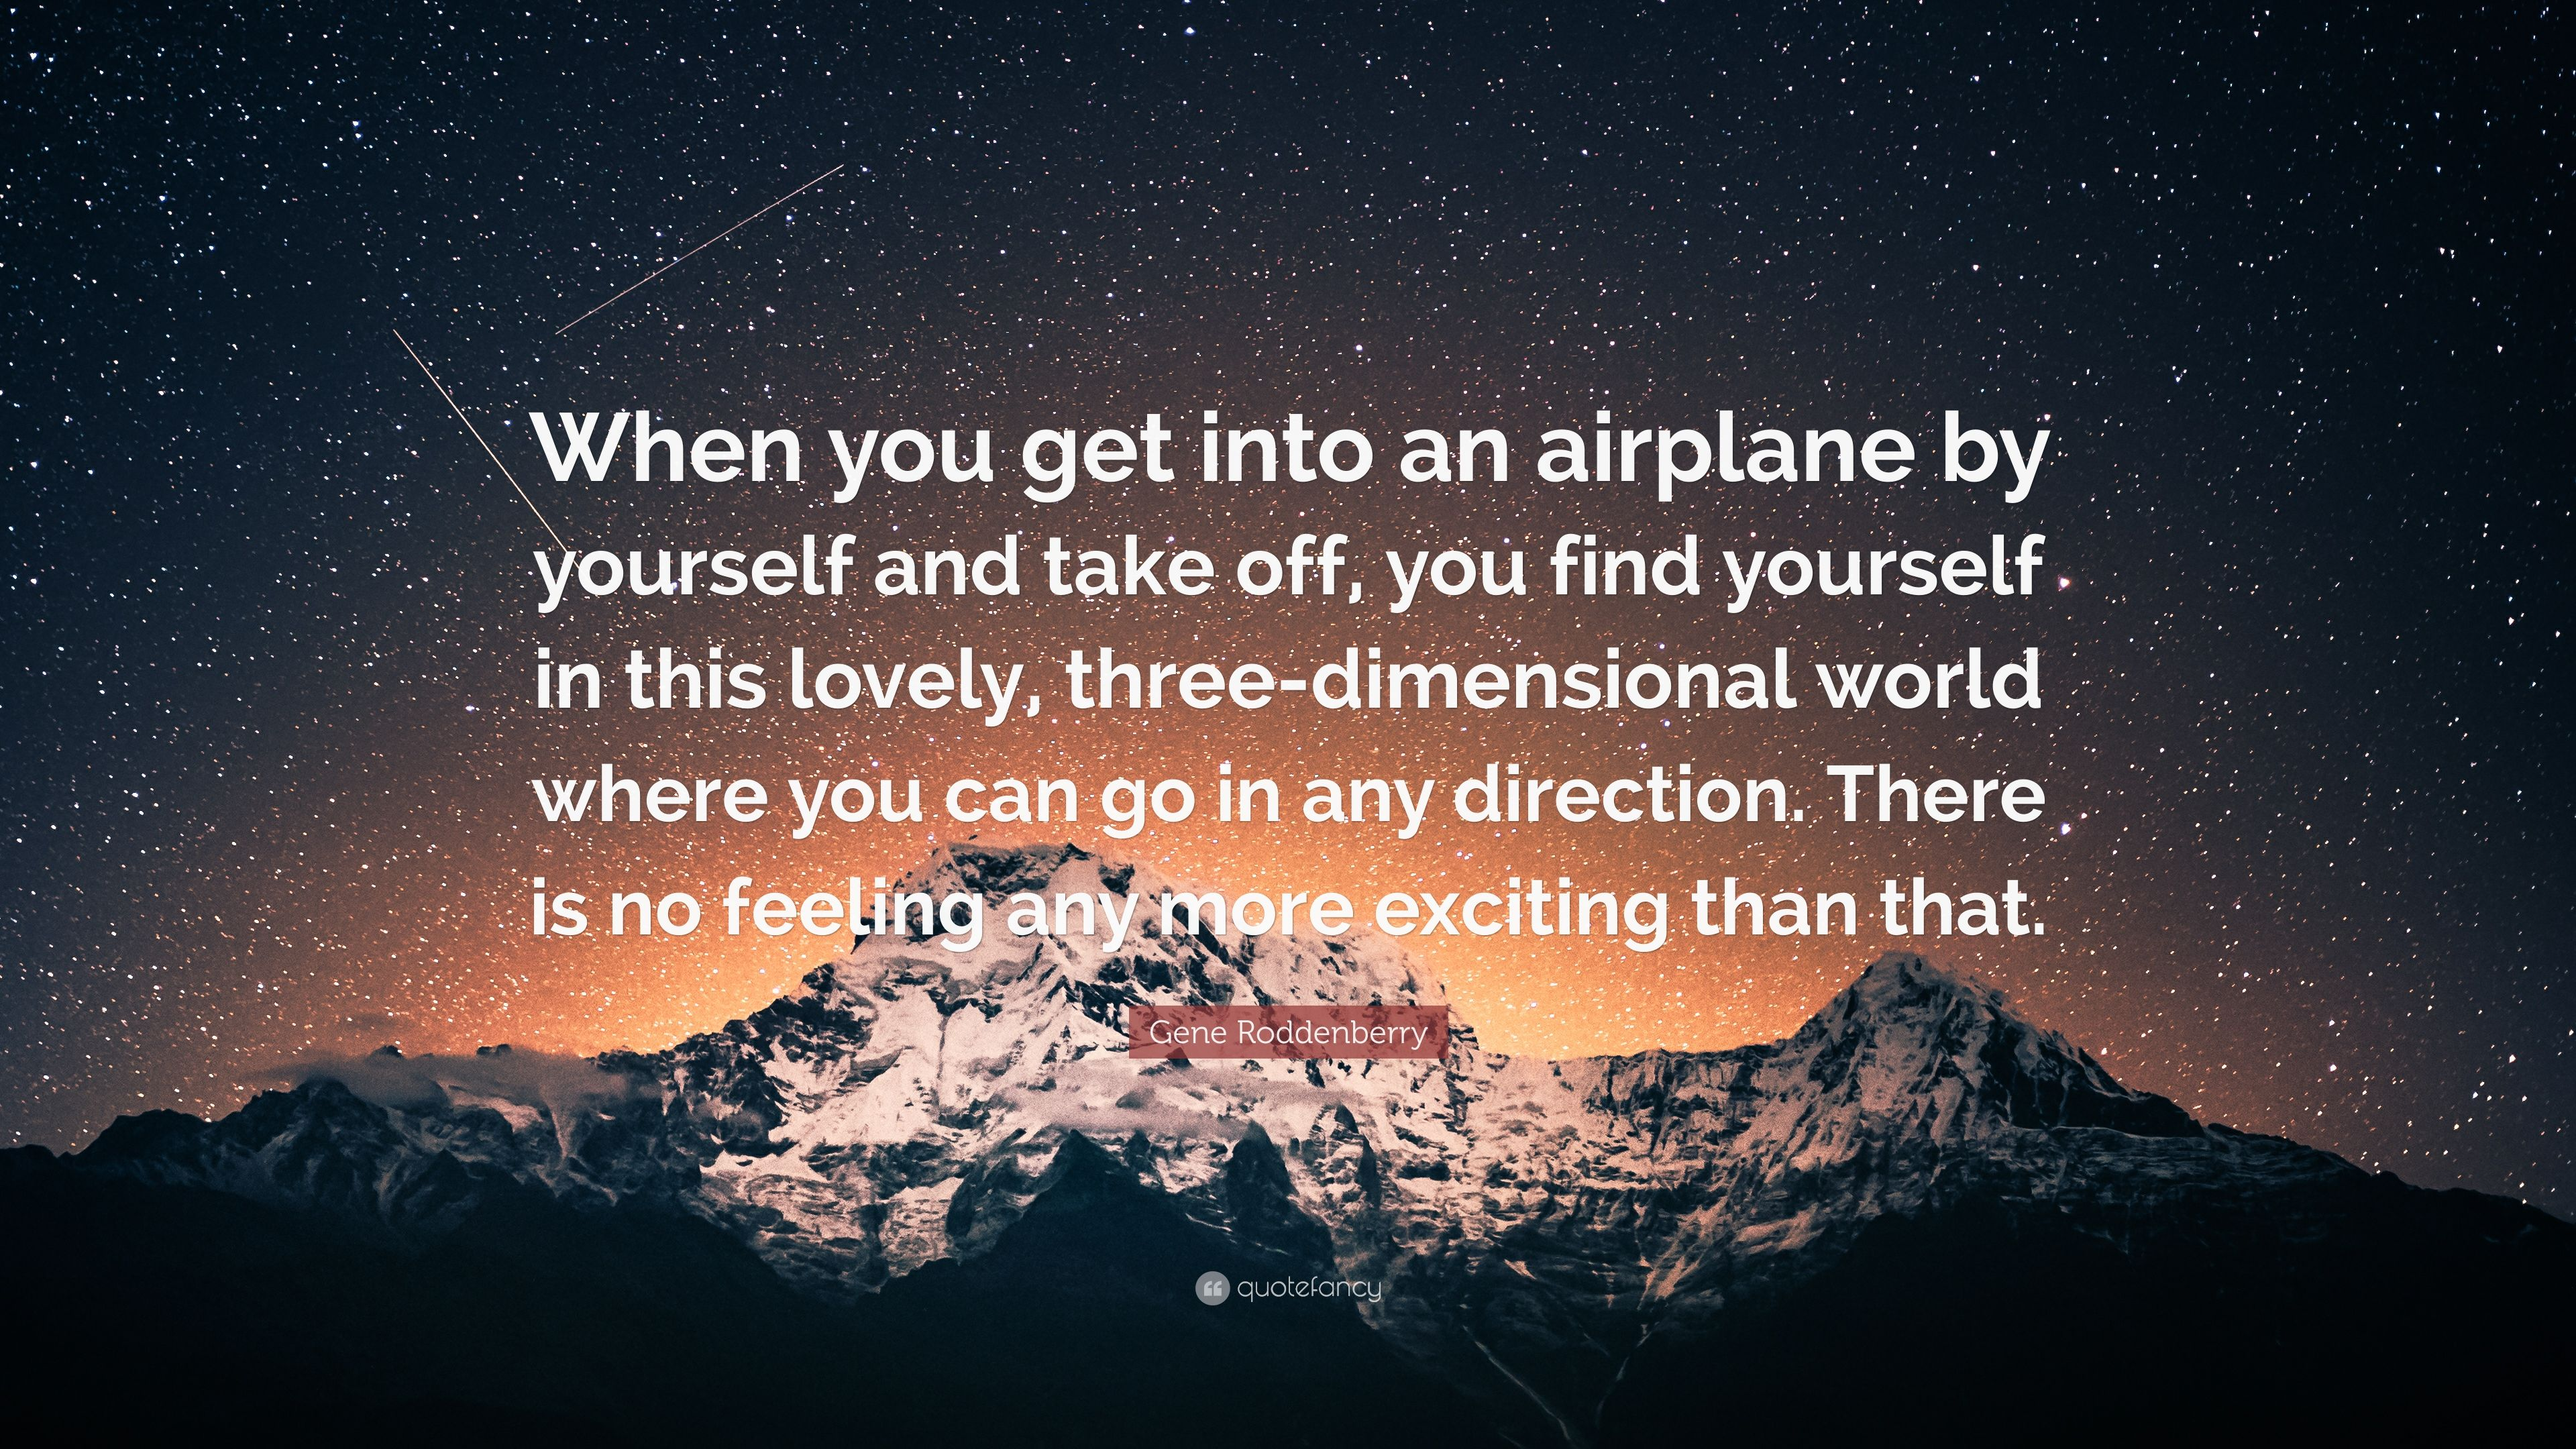 Gene Roddenberry Quote When You Get Into An Airplane By Yourself And Take Off